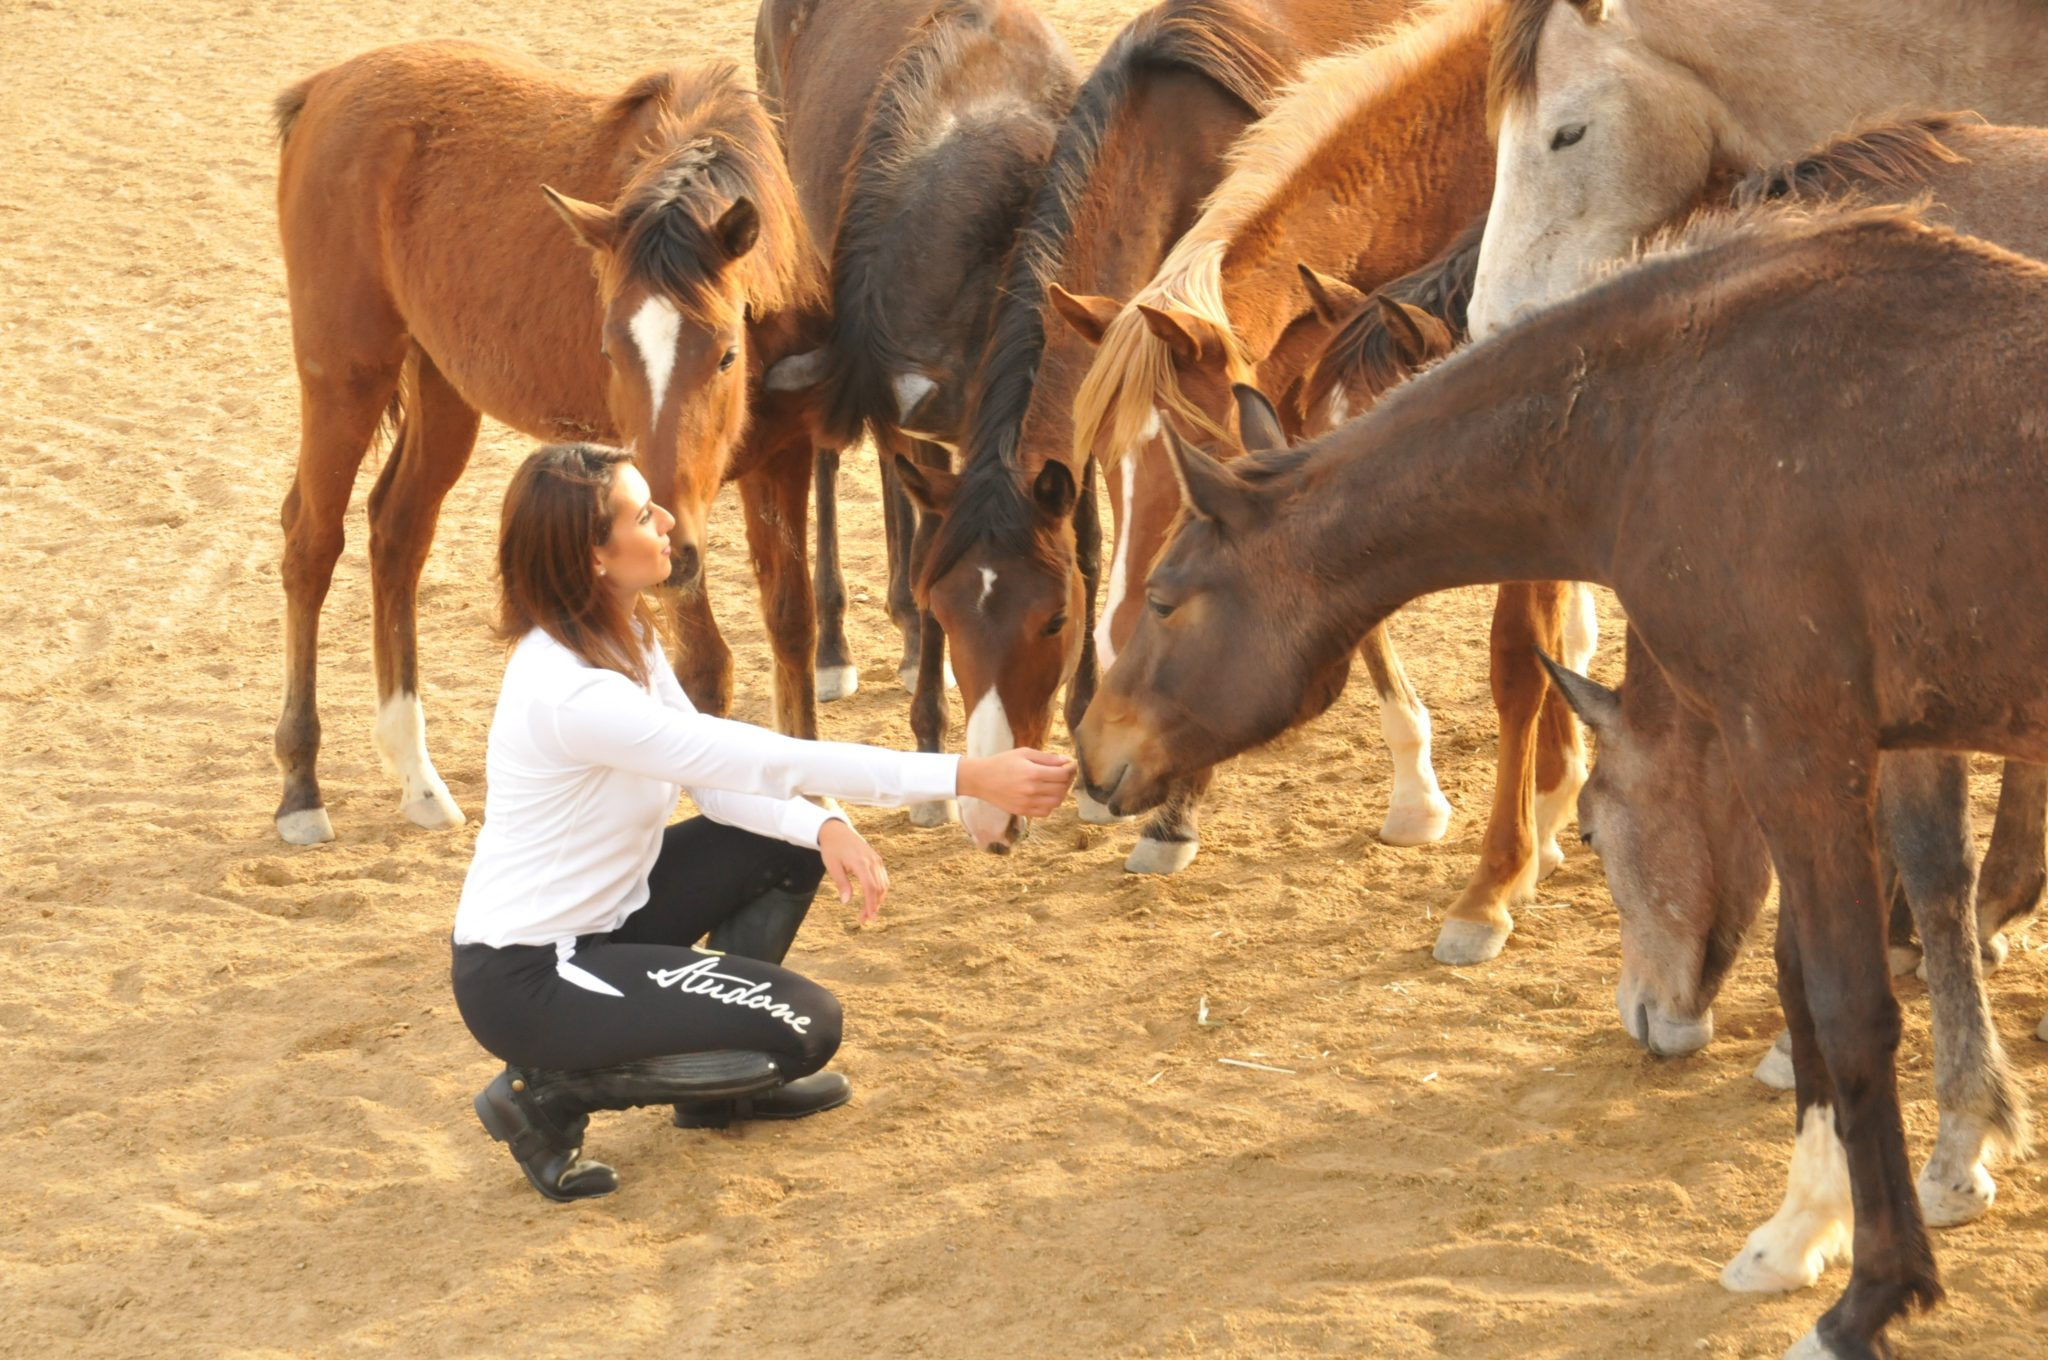 Endurance World Manal Fakhrawi. Surrounded with horses.